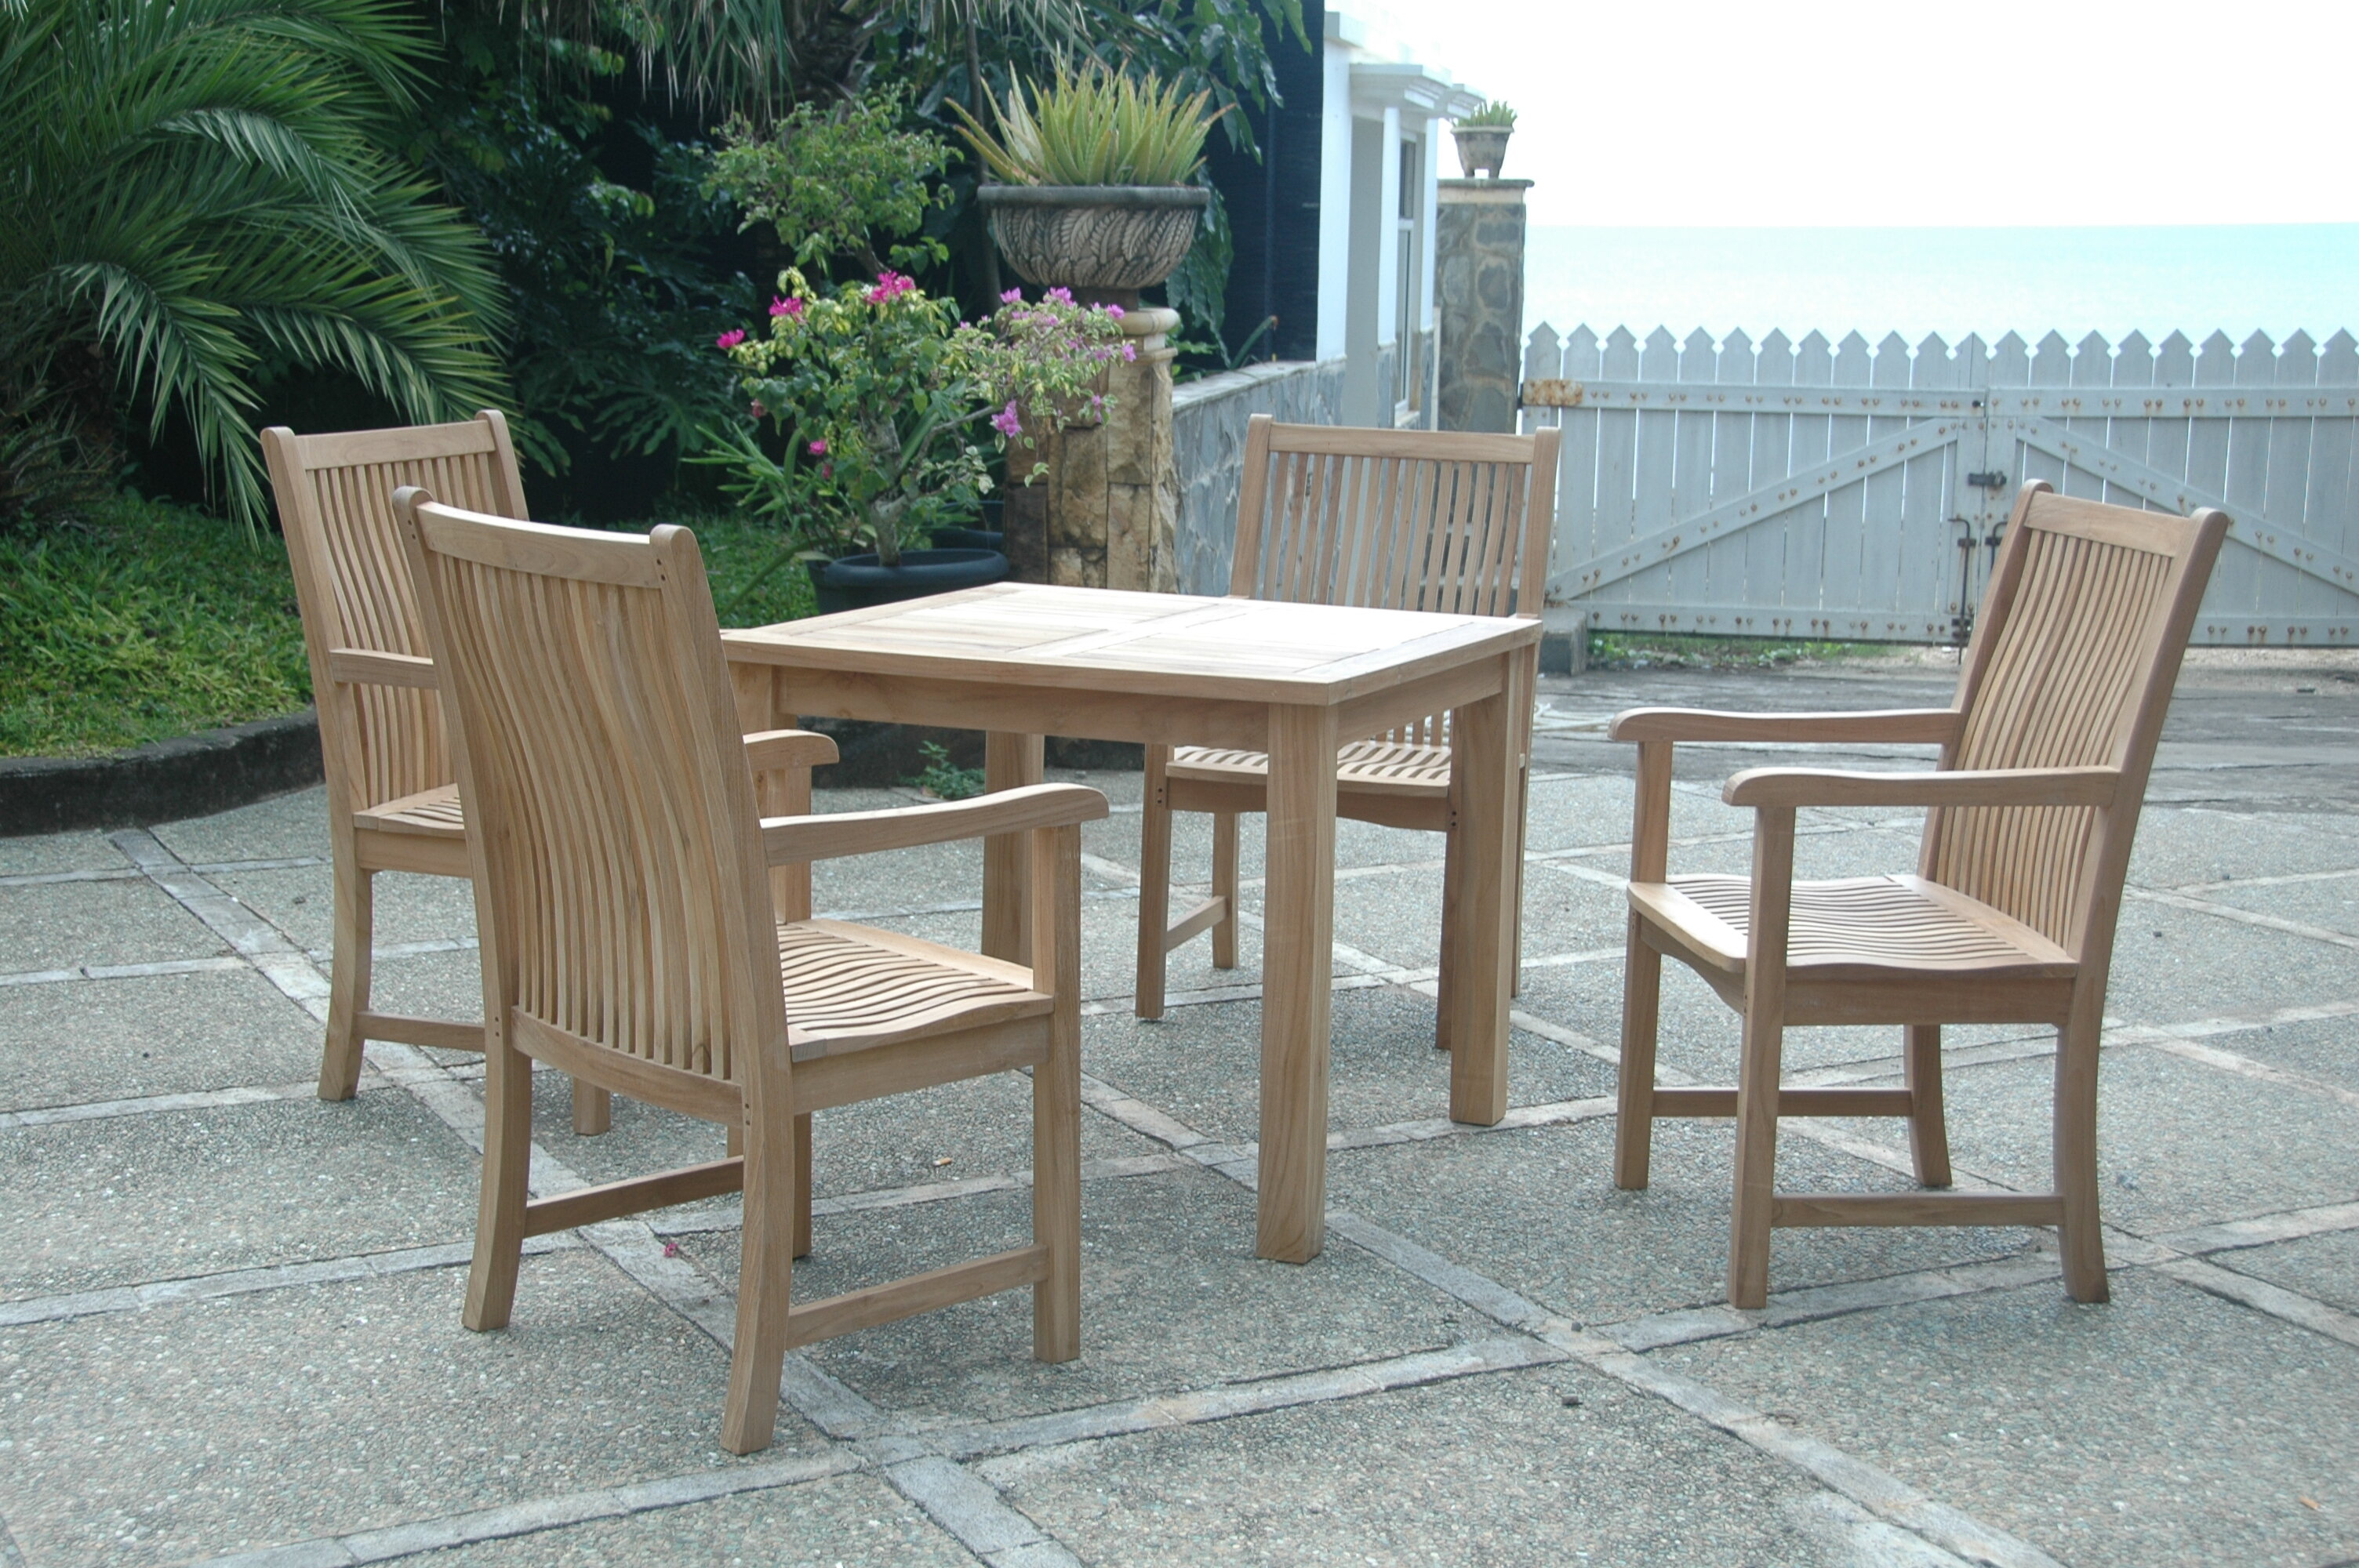 Anderson teak bahama chicago 5 piece dining set reviews for Bahama towel chaise cover